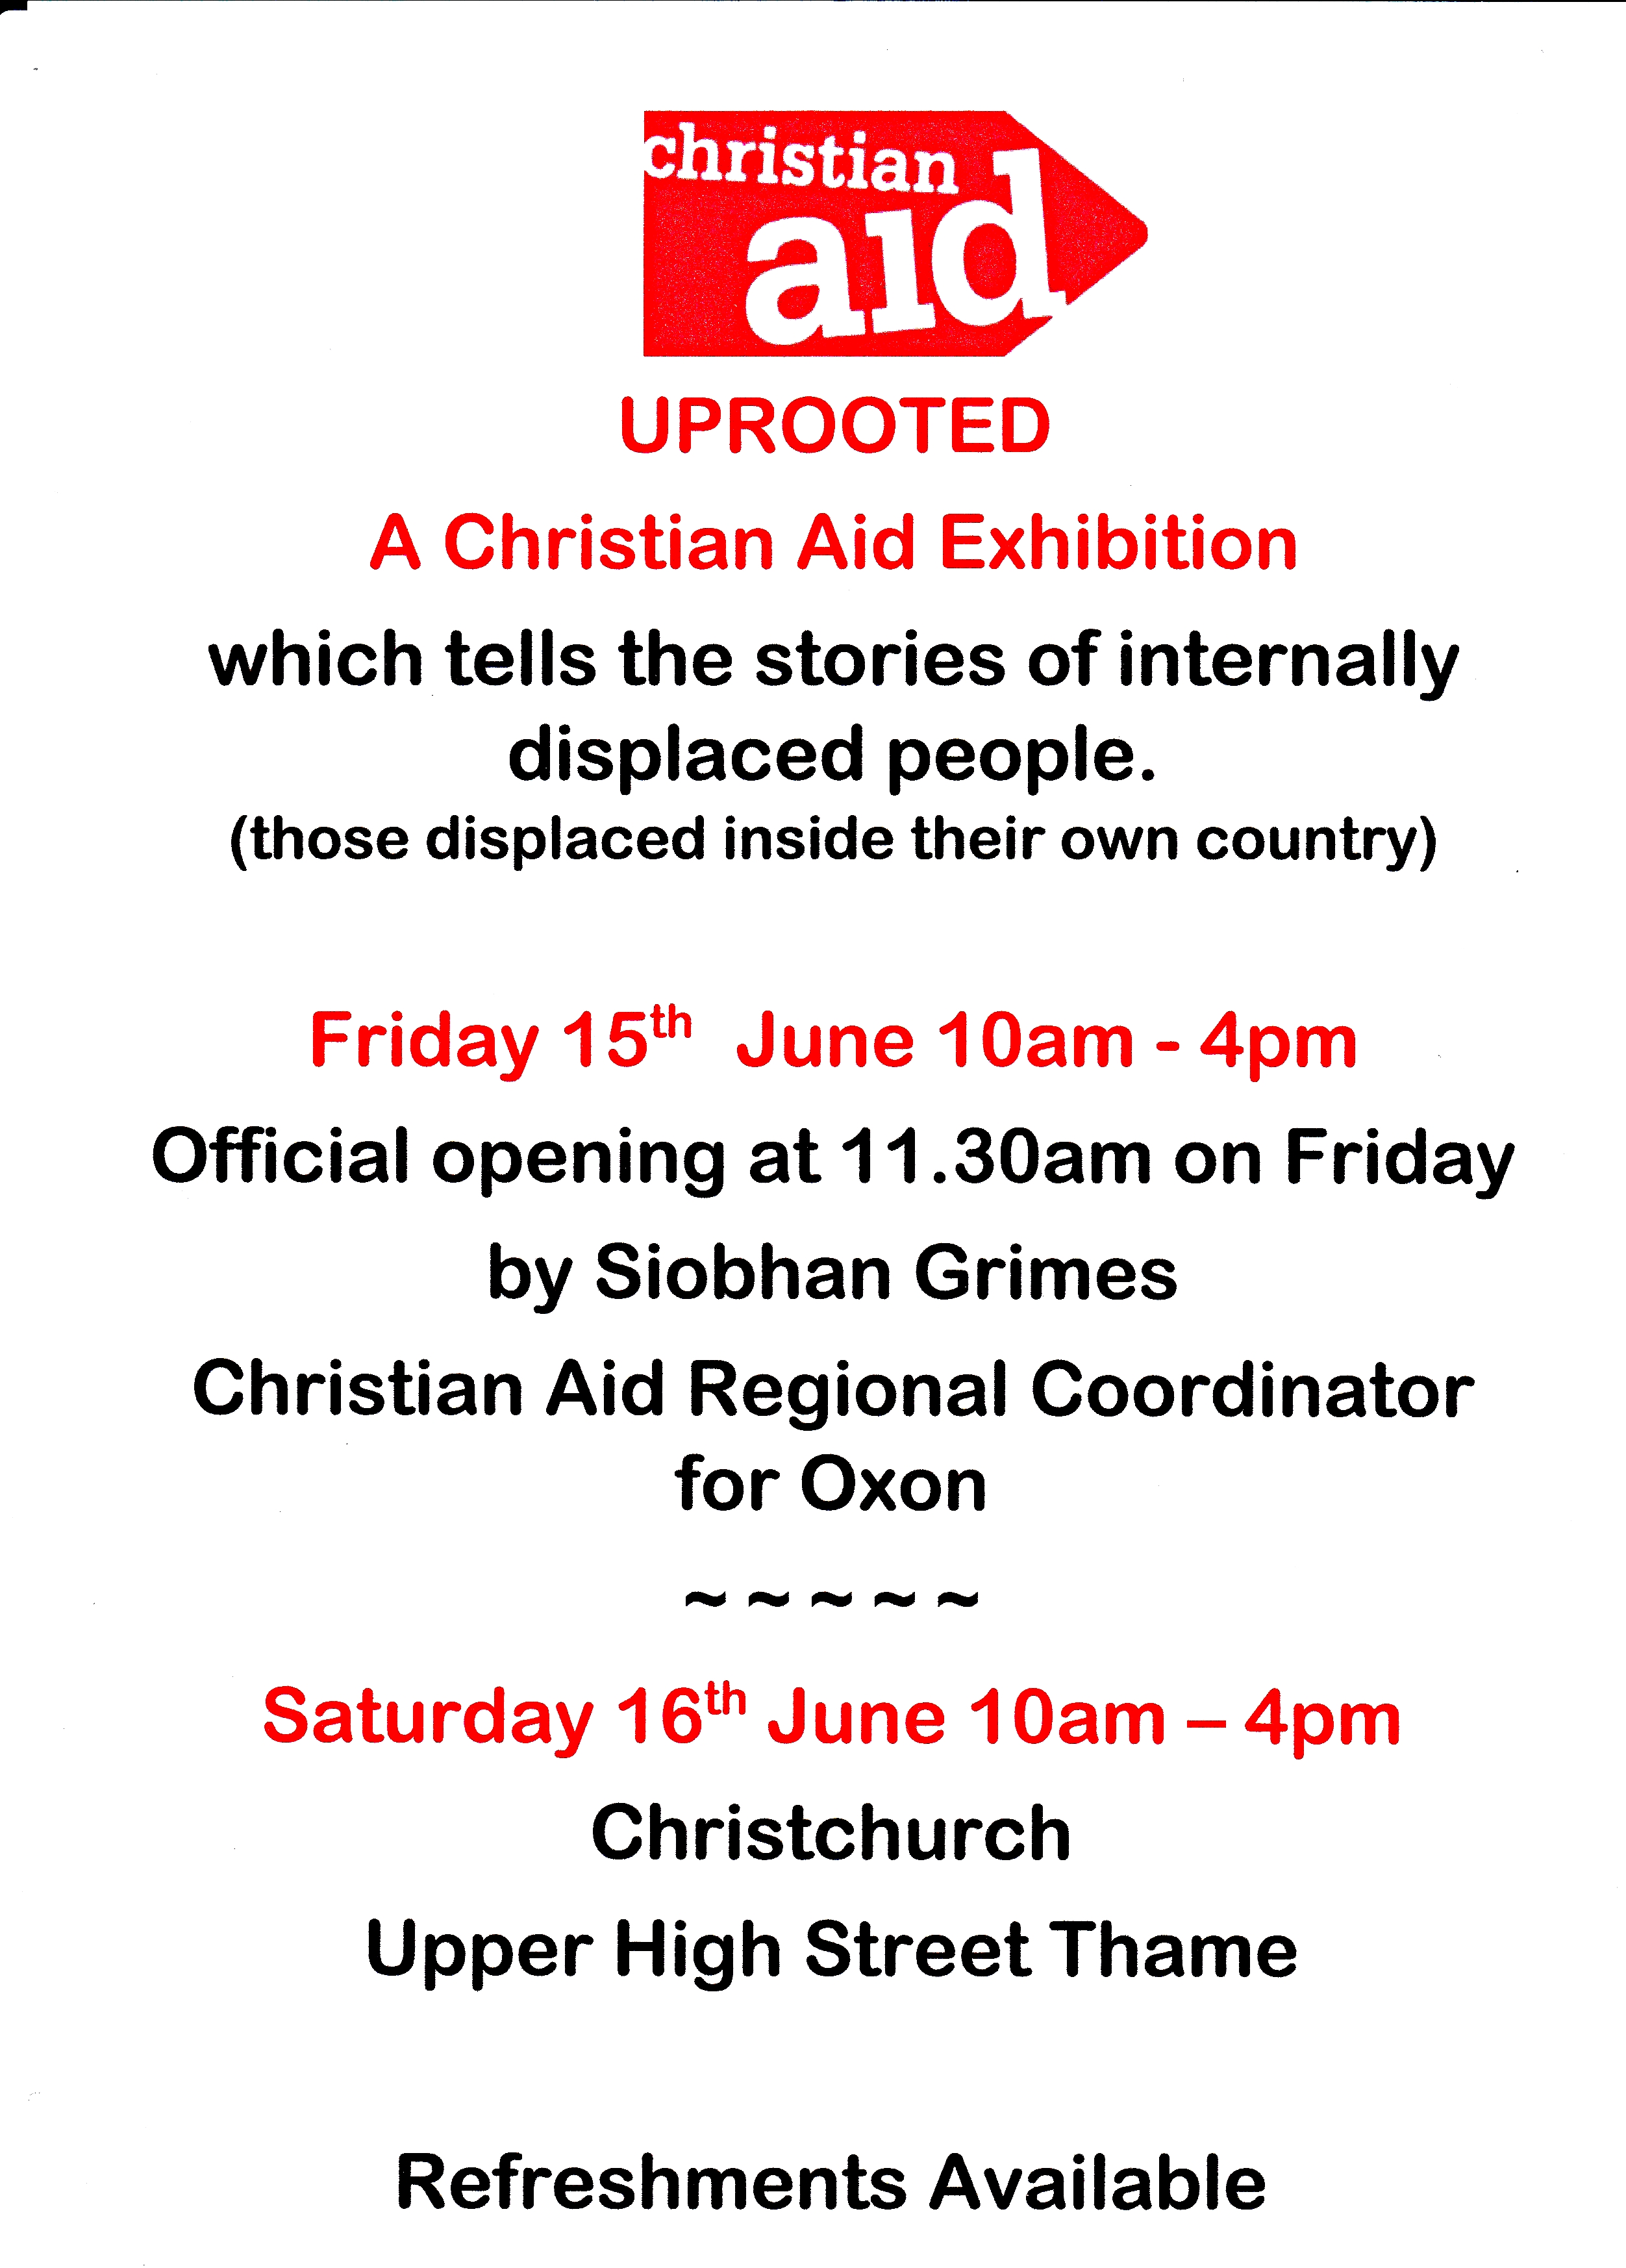 Christian Aid Exhibition